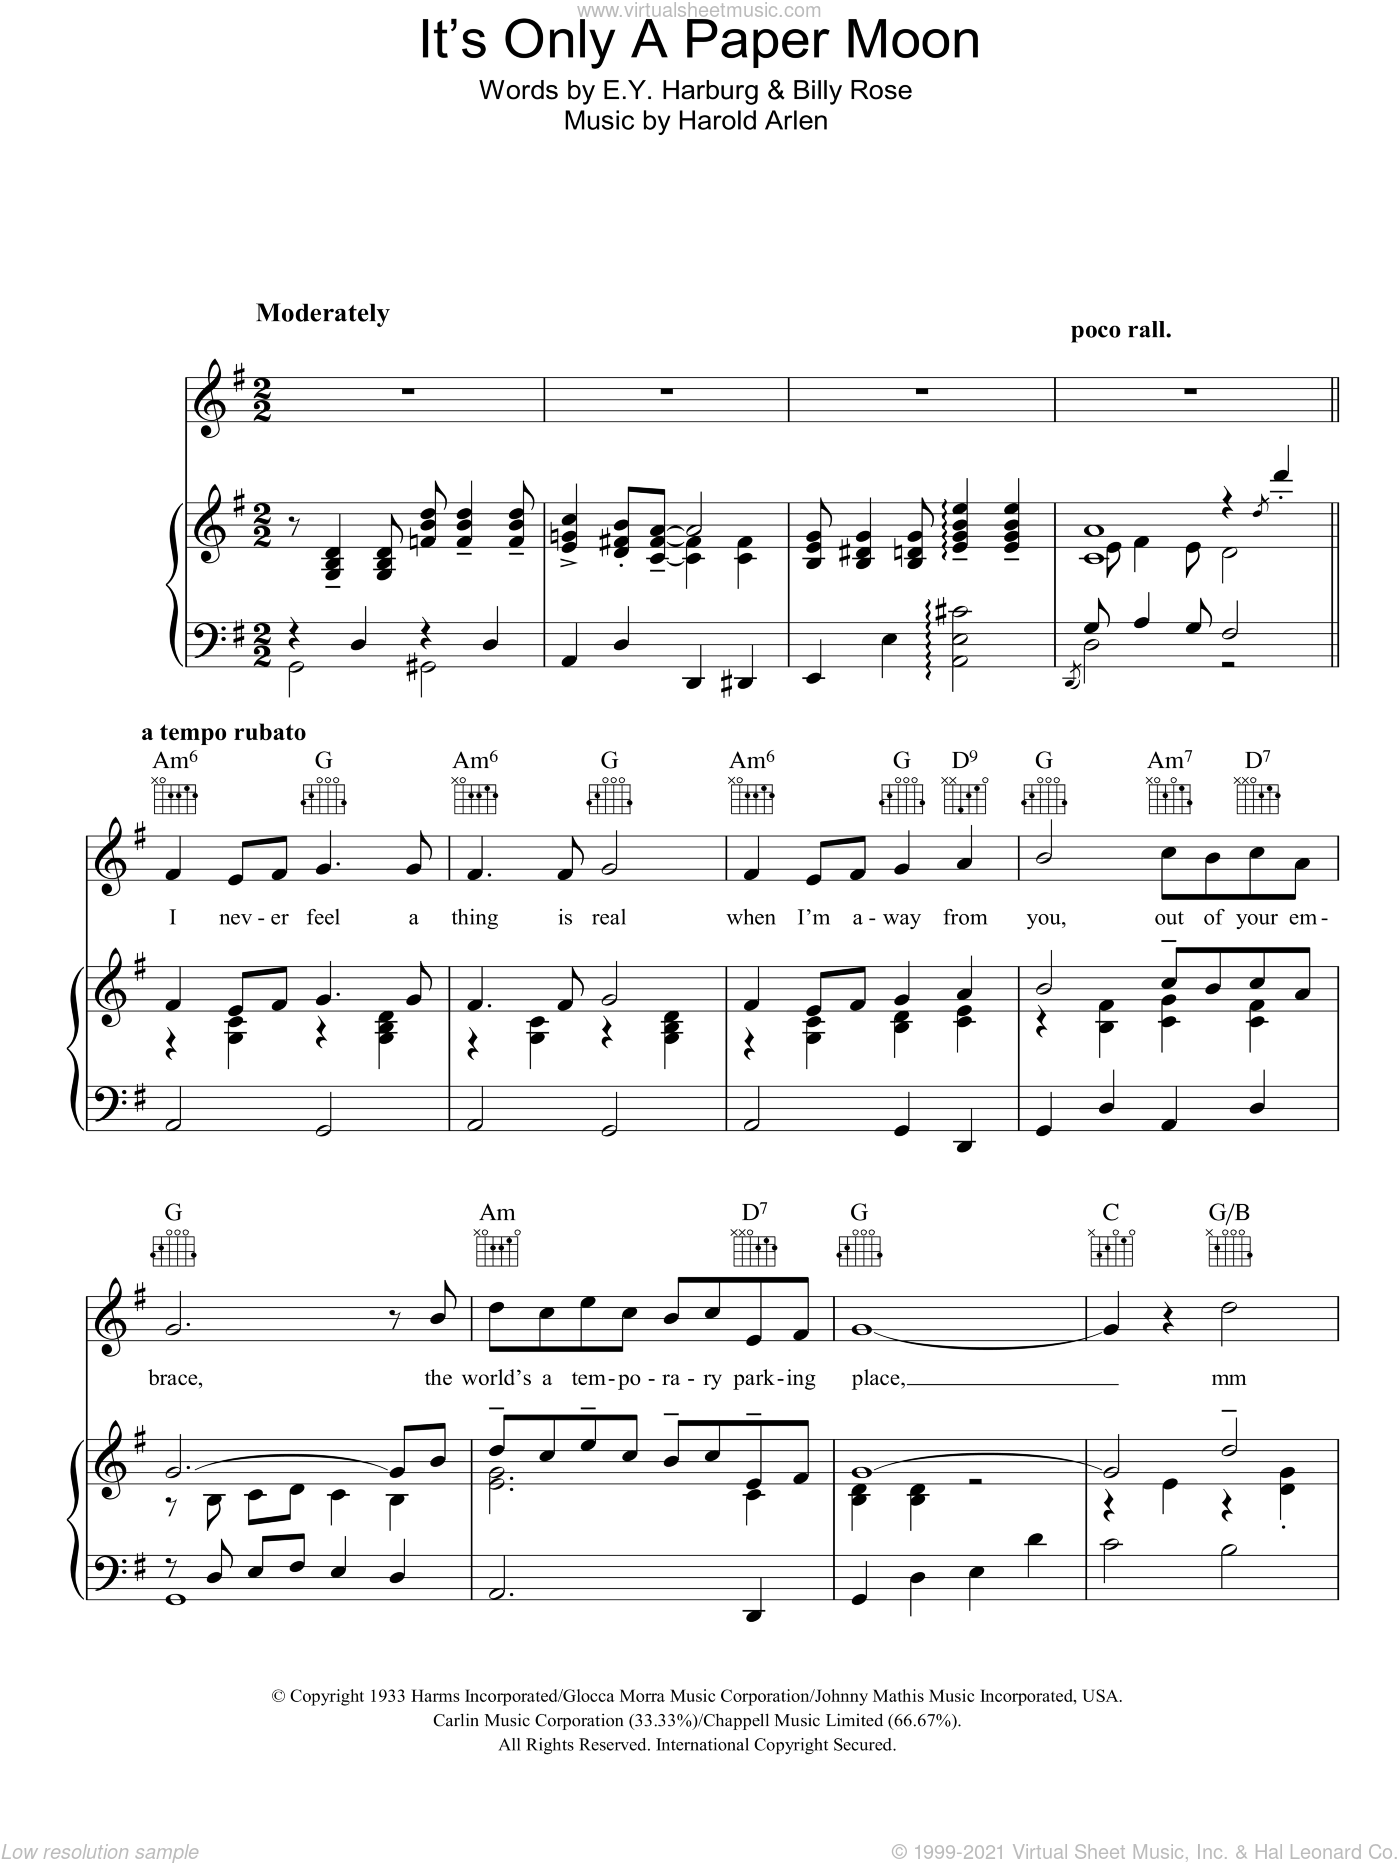 It's Only A Paper Moon sheet music for voice, piano or guitar by E.Y. Harburg, Billy Rose and Harold Arlen, intermediate skill level